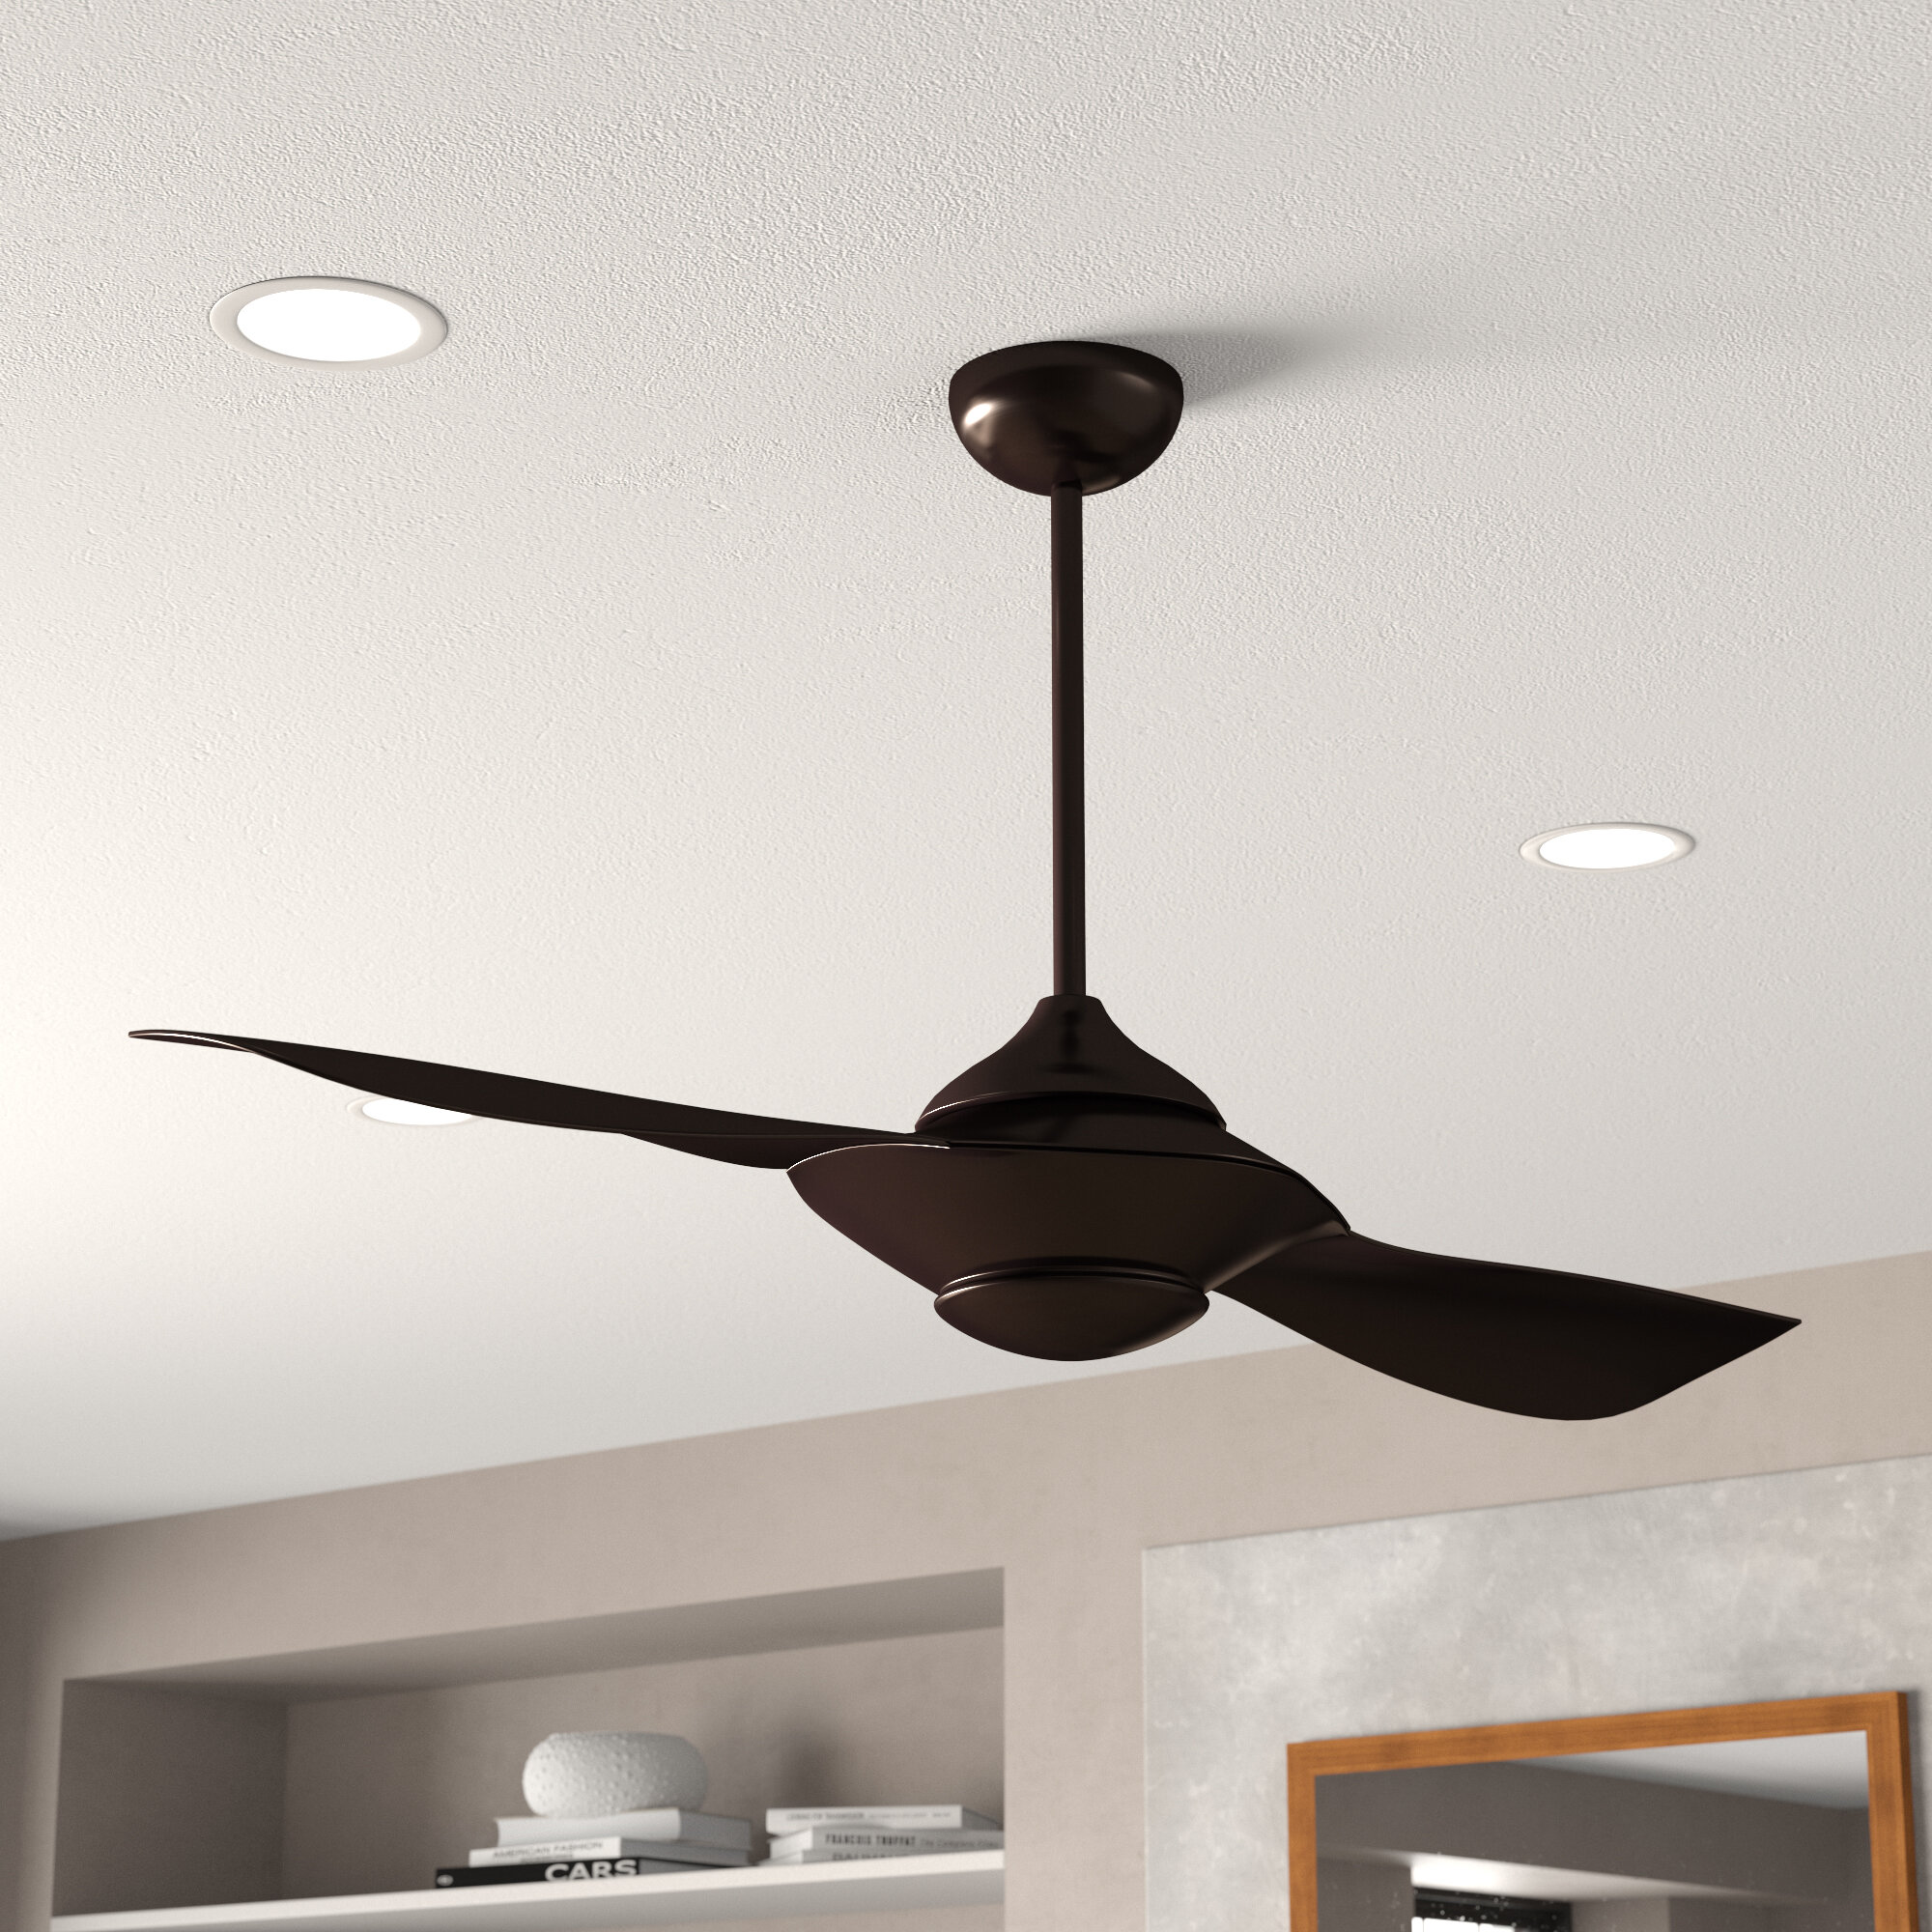 Orren Ellis 54 Knaus 2 Blade Propeller Ceiling Fan With Remote Control And Light Kit Included Reviews Wayfair Ca